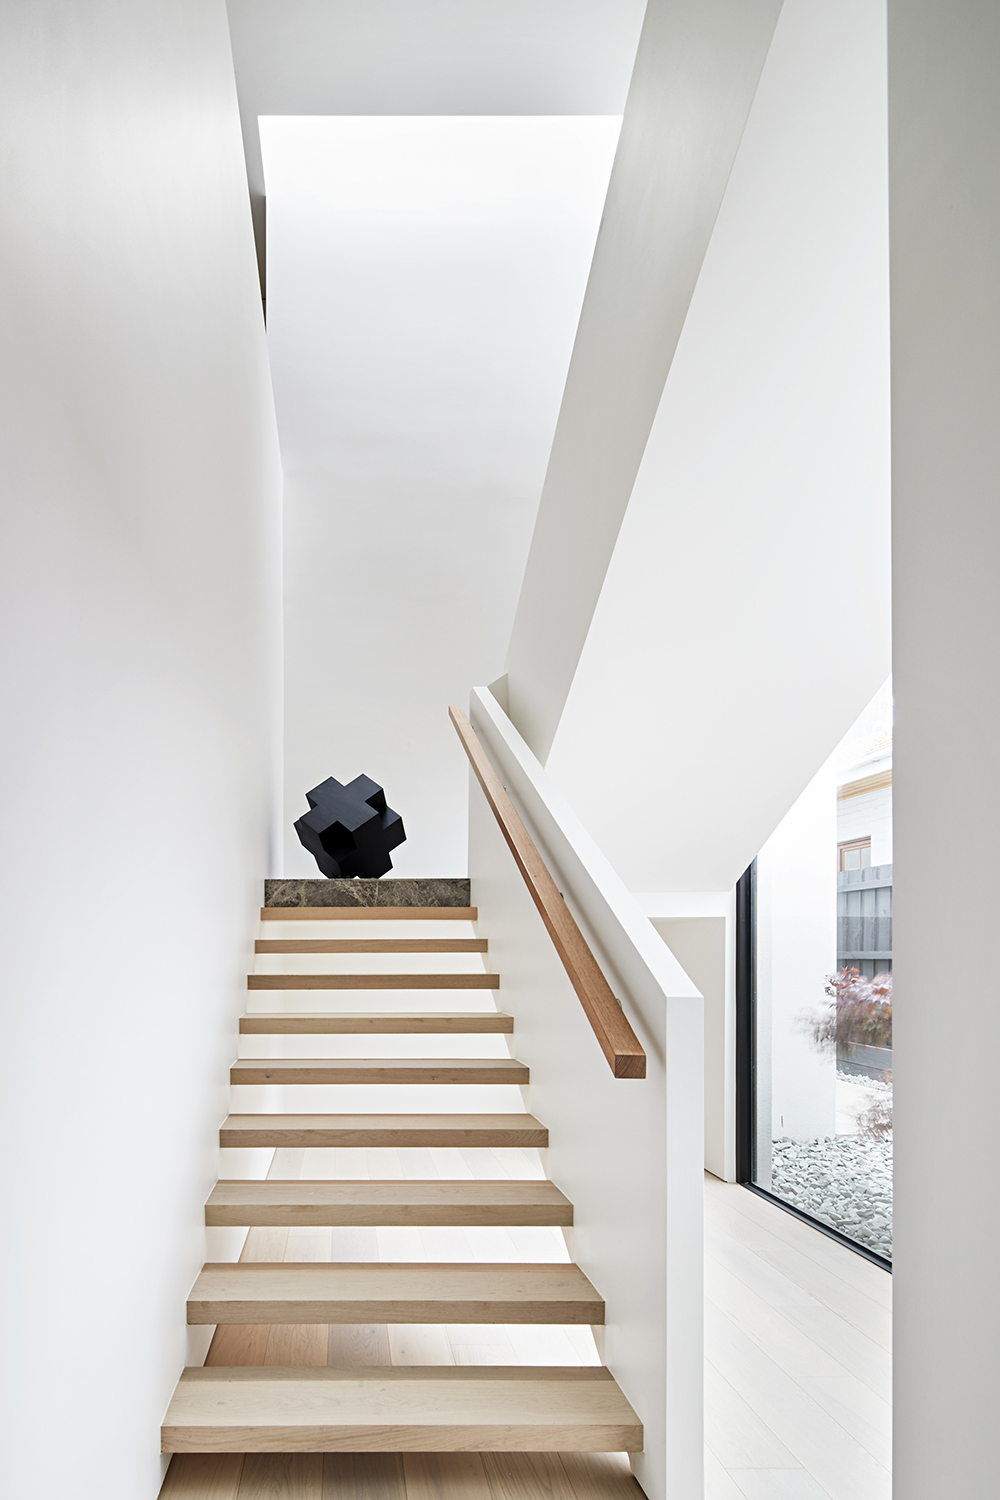 The Concrete Conceal House By Tecture Local Australian Bespoke Interiors & Contempoary Architecture Caulfield, Melbourne Image 29